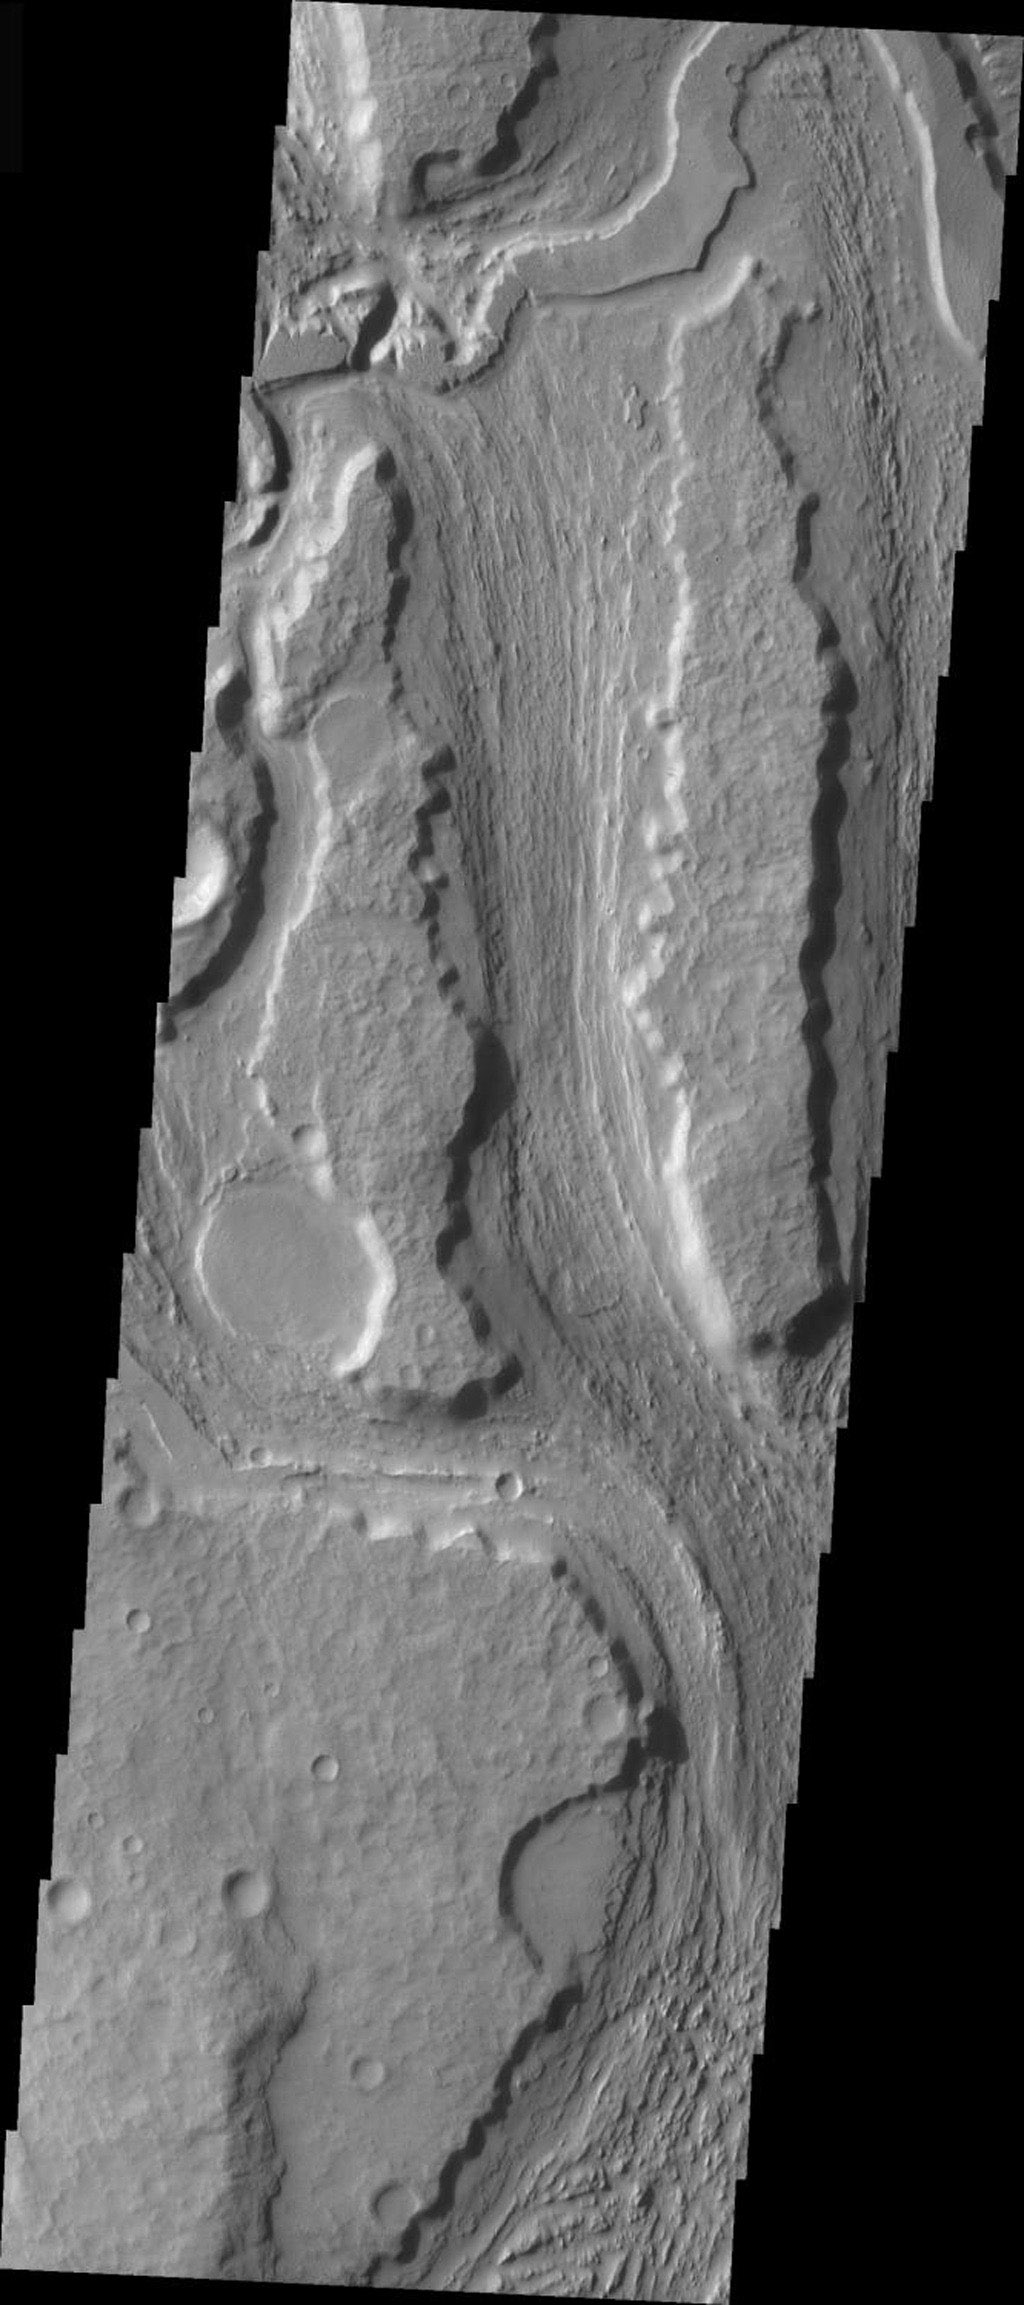 This image released on Nov 29, 2004 from NASA's 2001 Mars Odyssey shows the southern reach of Minio Vallis on Mars, a small fluvial channel located near the larger Mangala Vallis. Both channels are in the Tharsis region, in the area west of Arsia Mons.